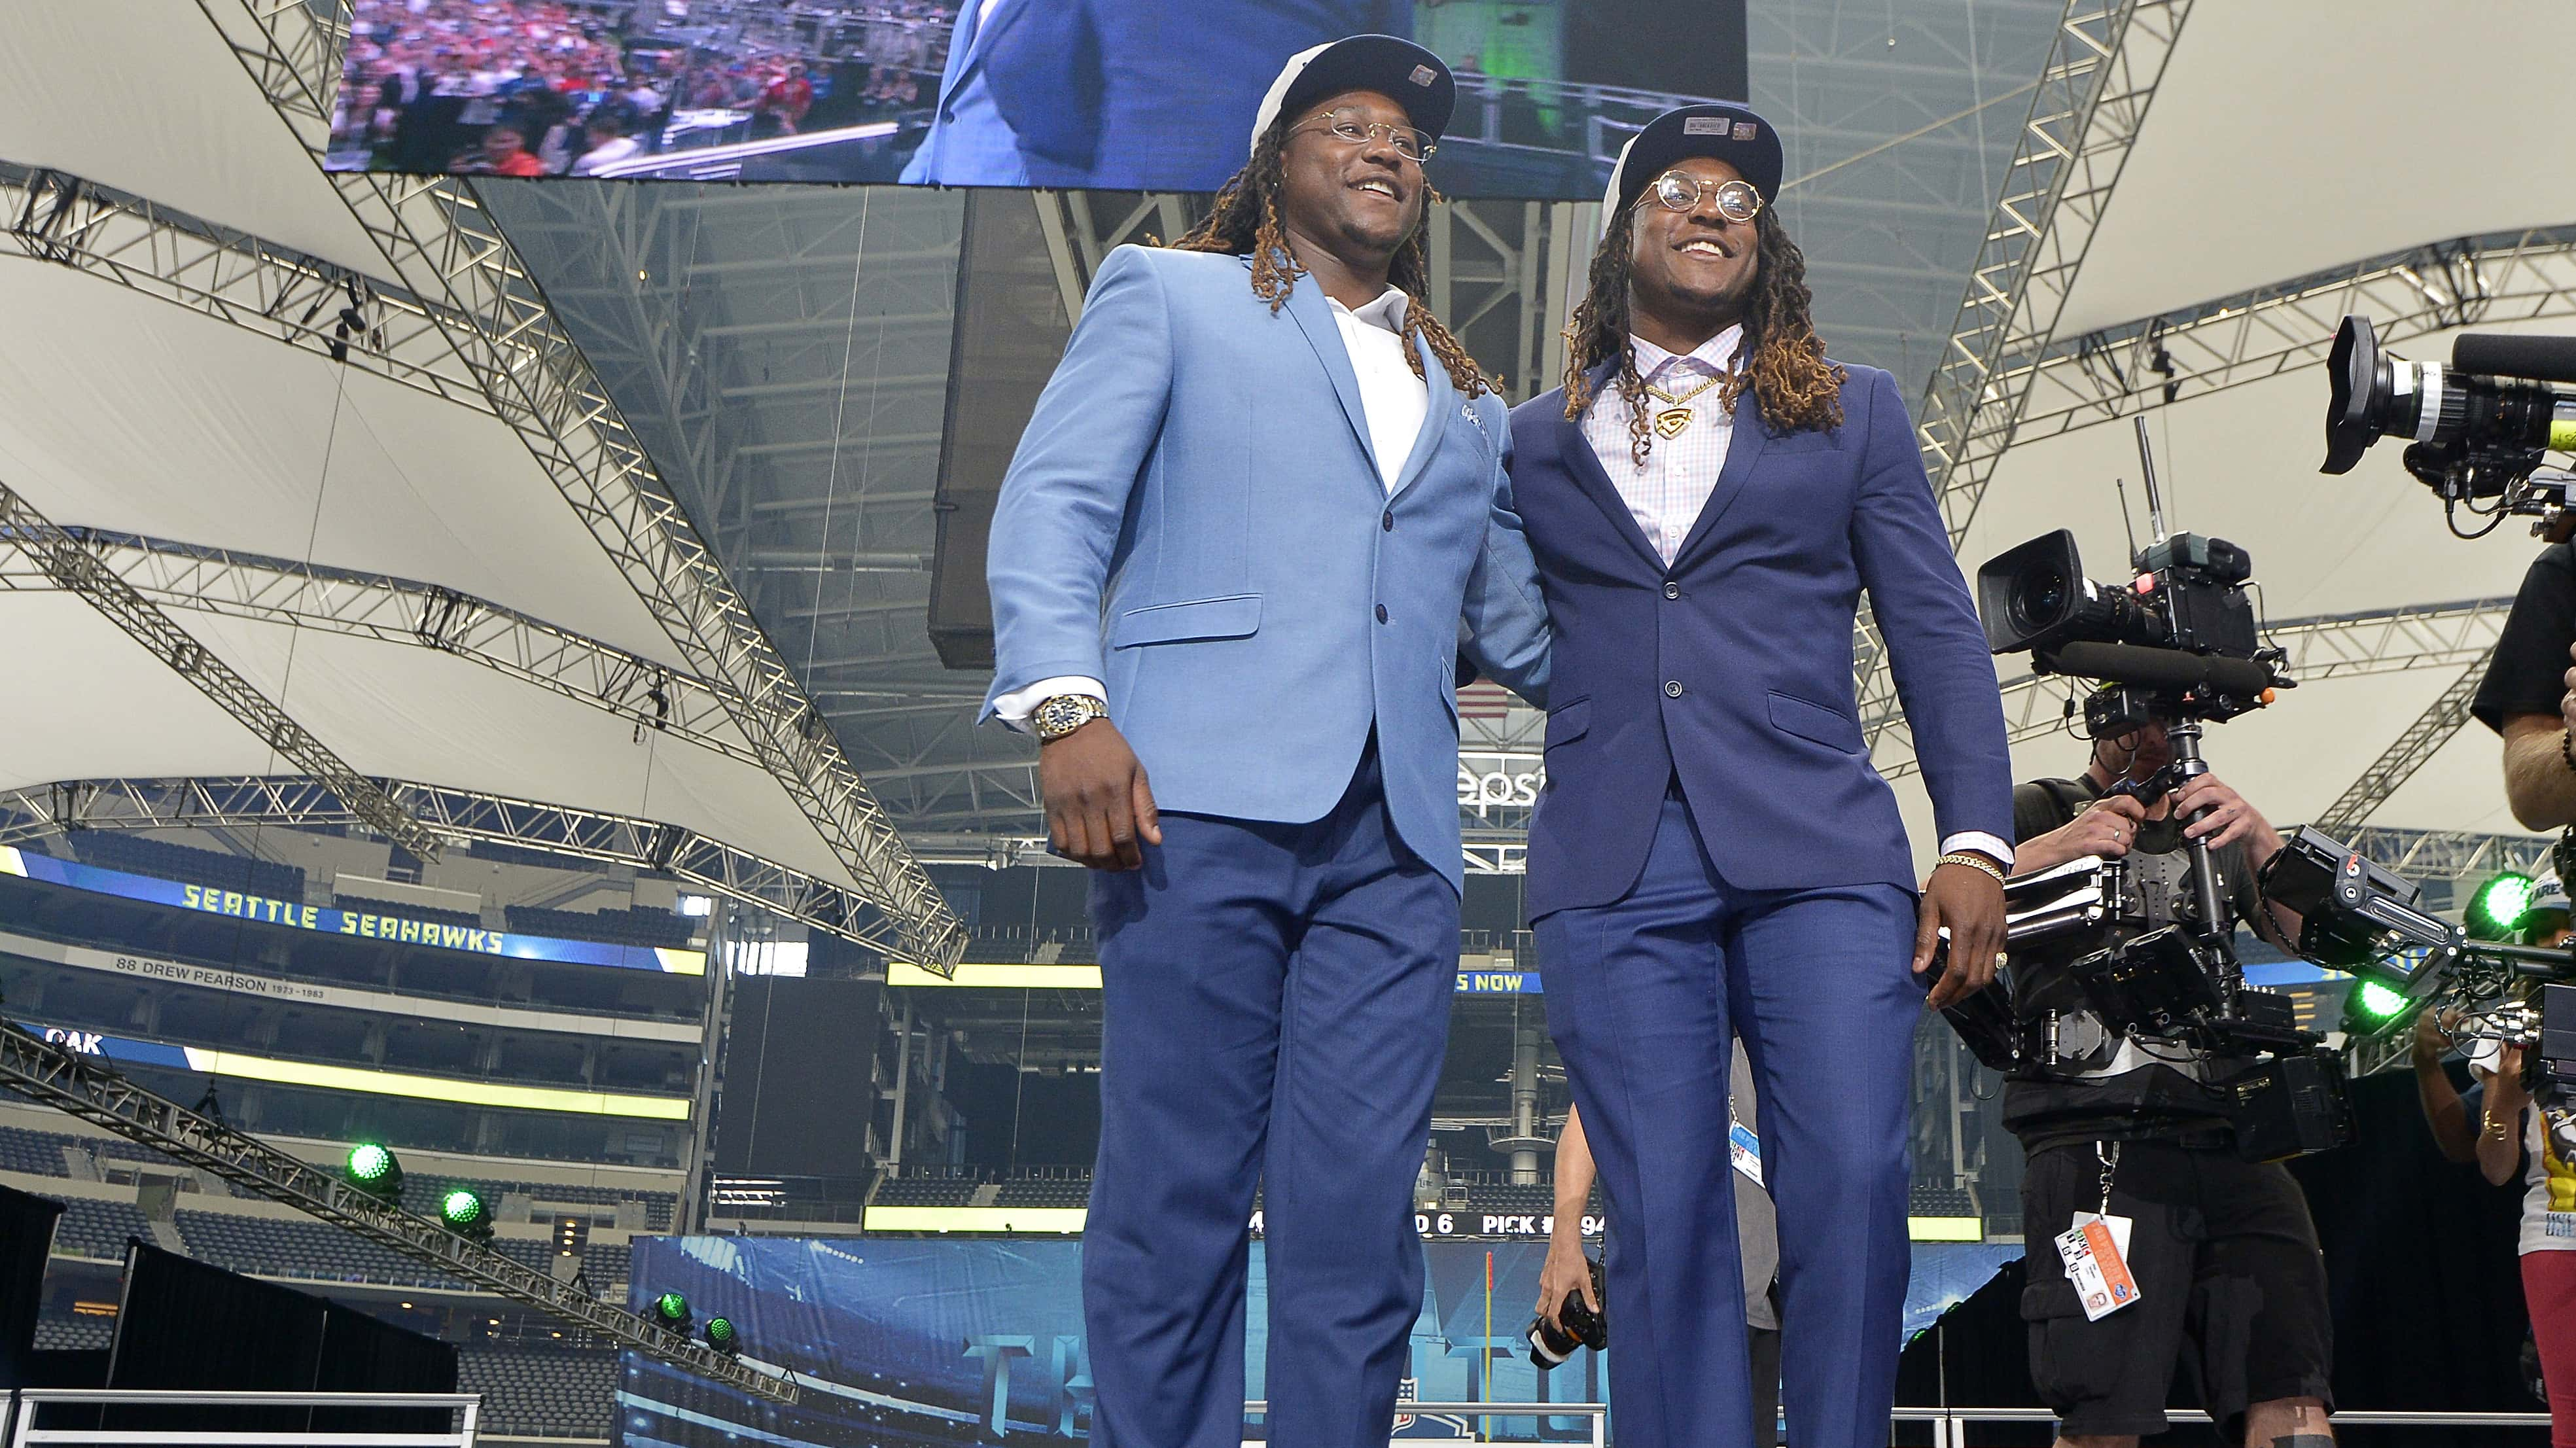 Shaquem Griffin drafted by Seattle Seahawks, reunited with twin brother  Shaquill